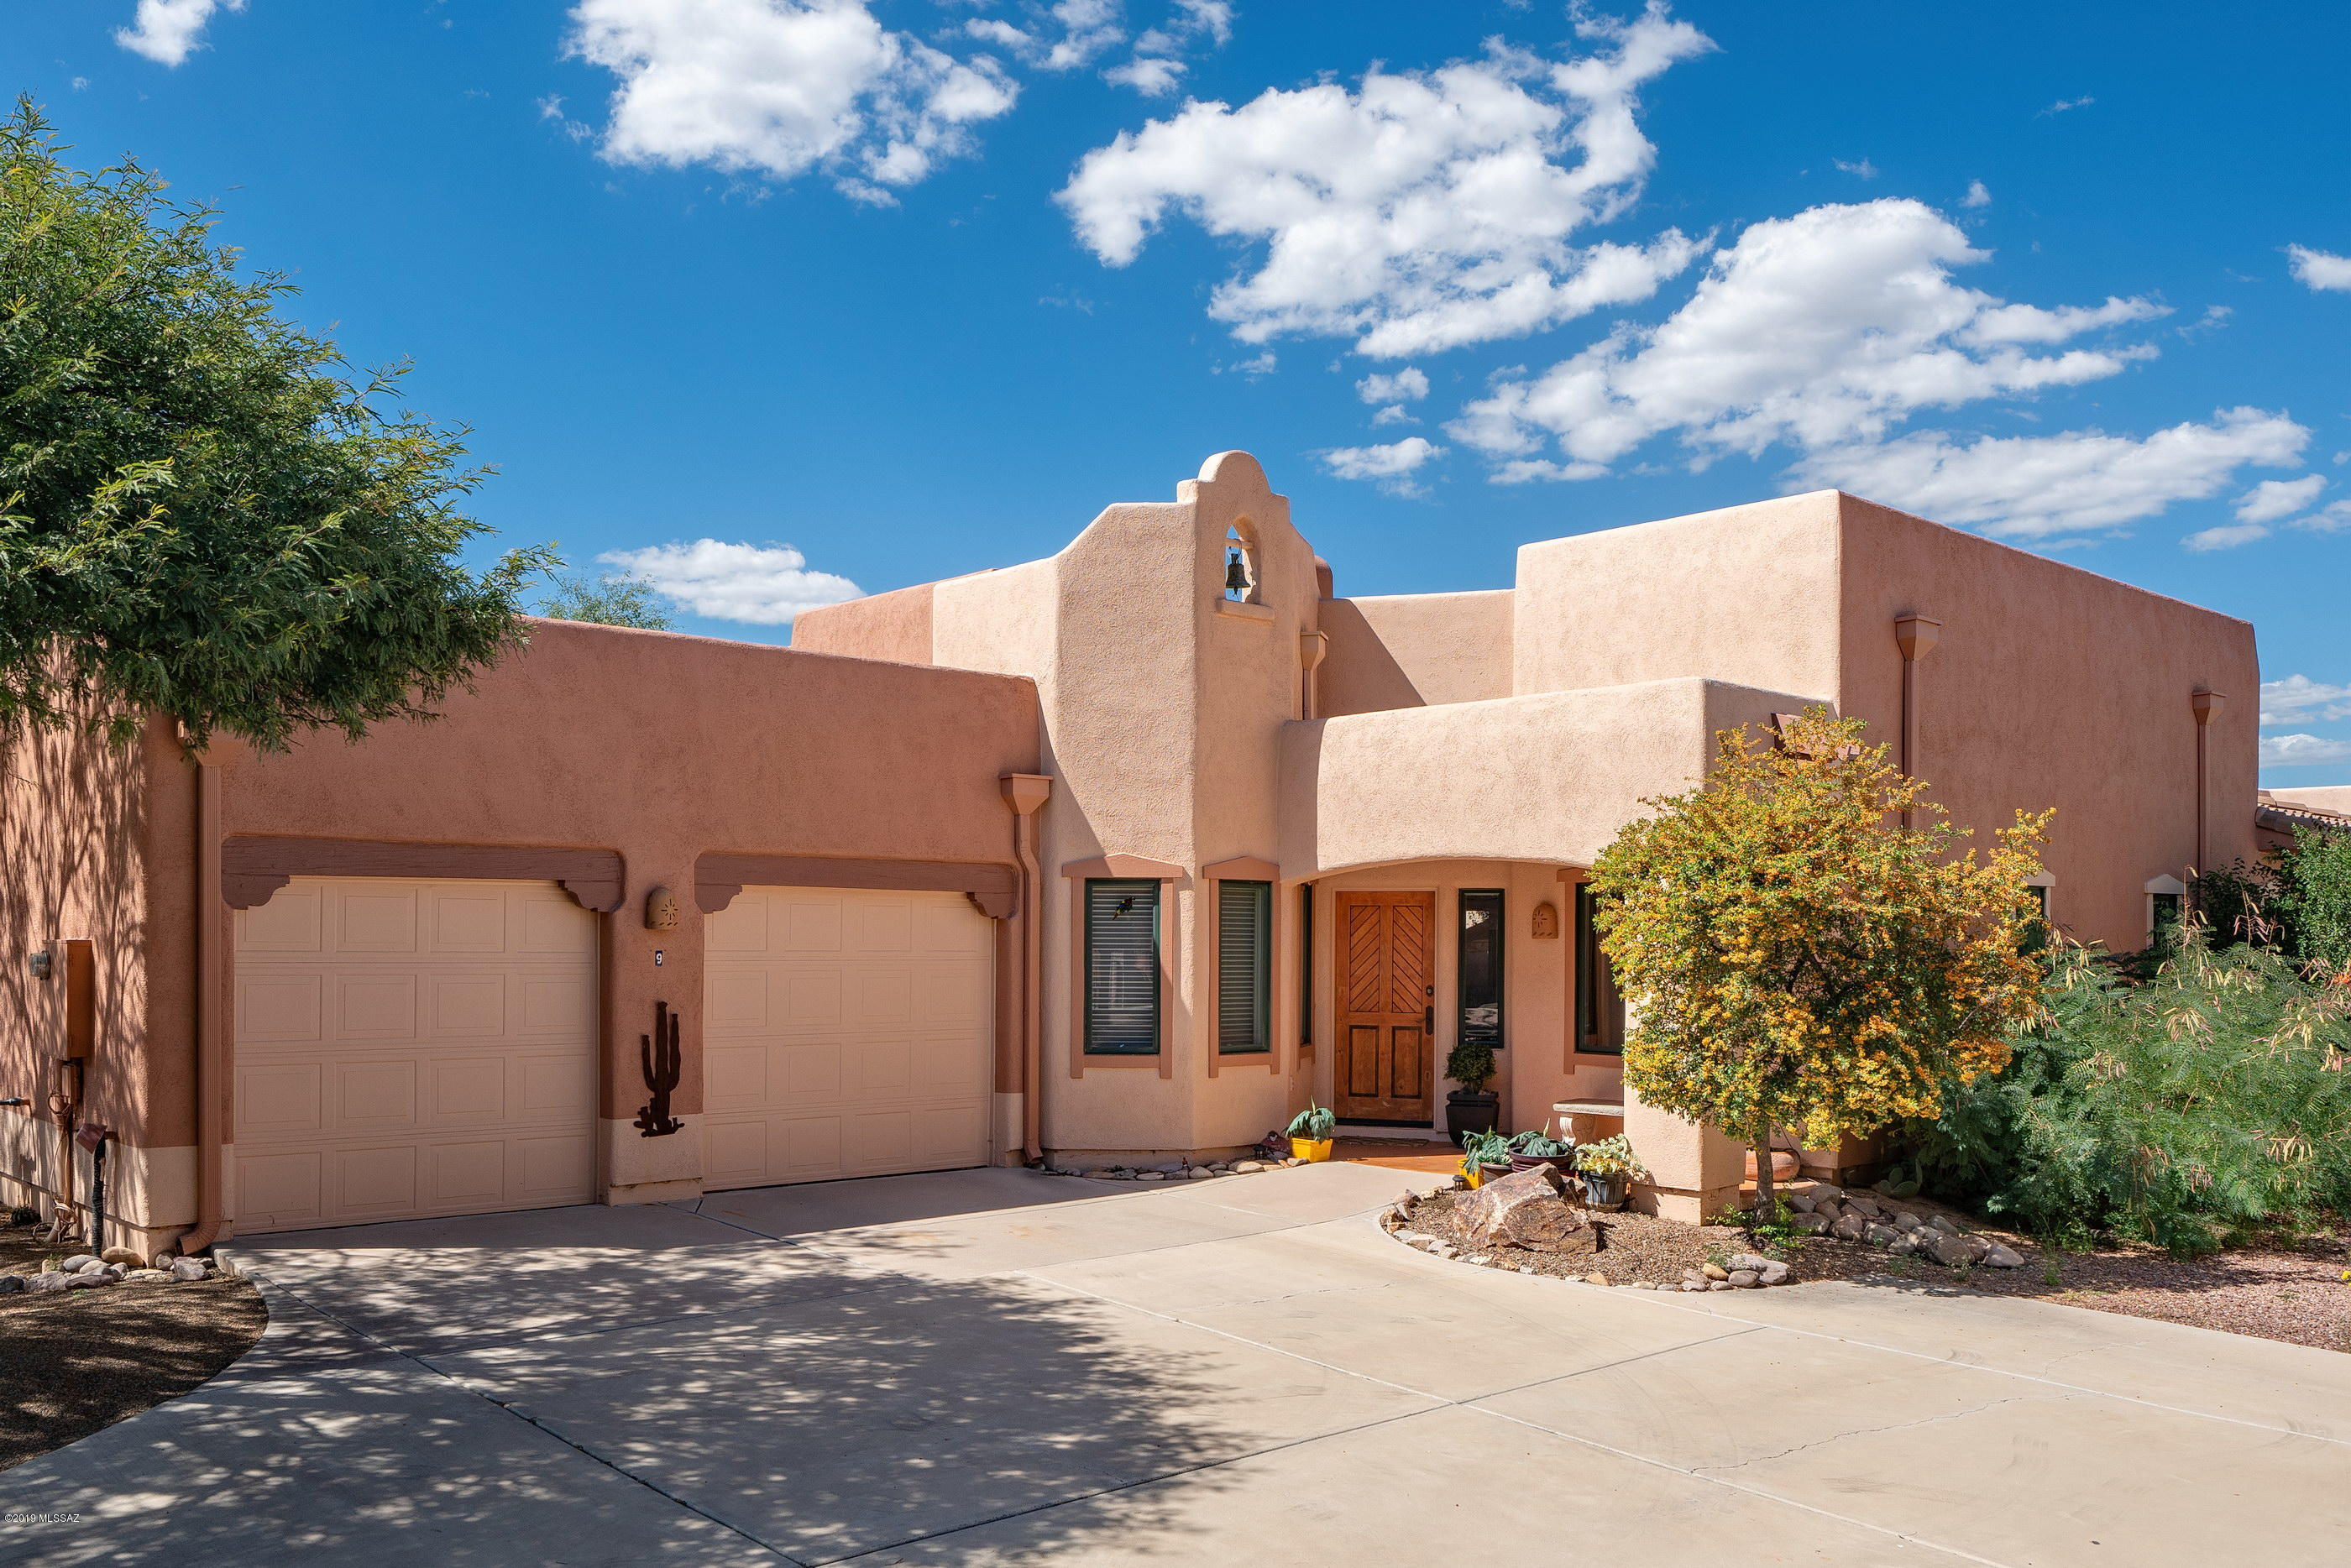 Photo of 9 Circulo Diego Rivera, Tubac, AZ 85646